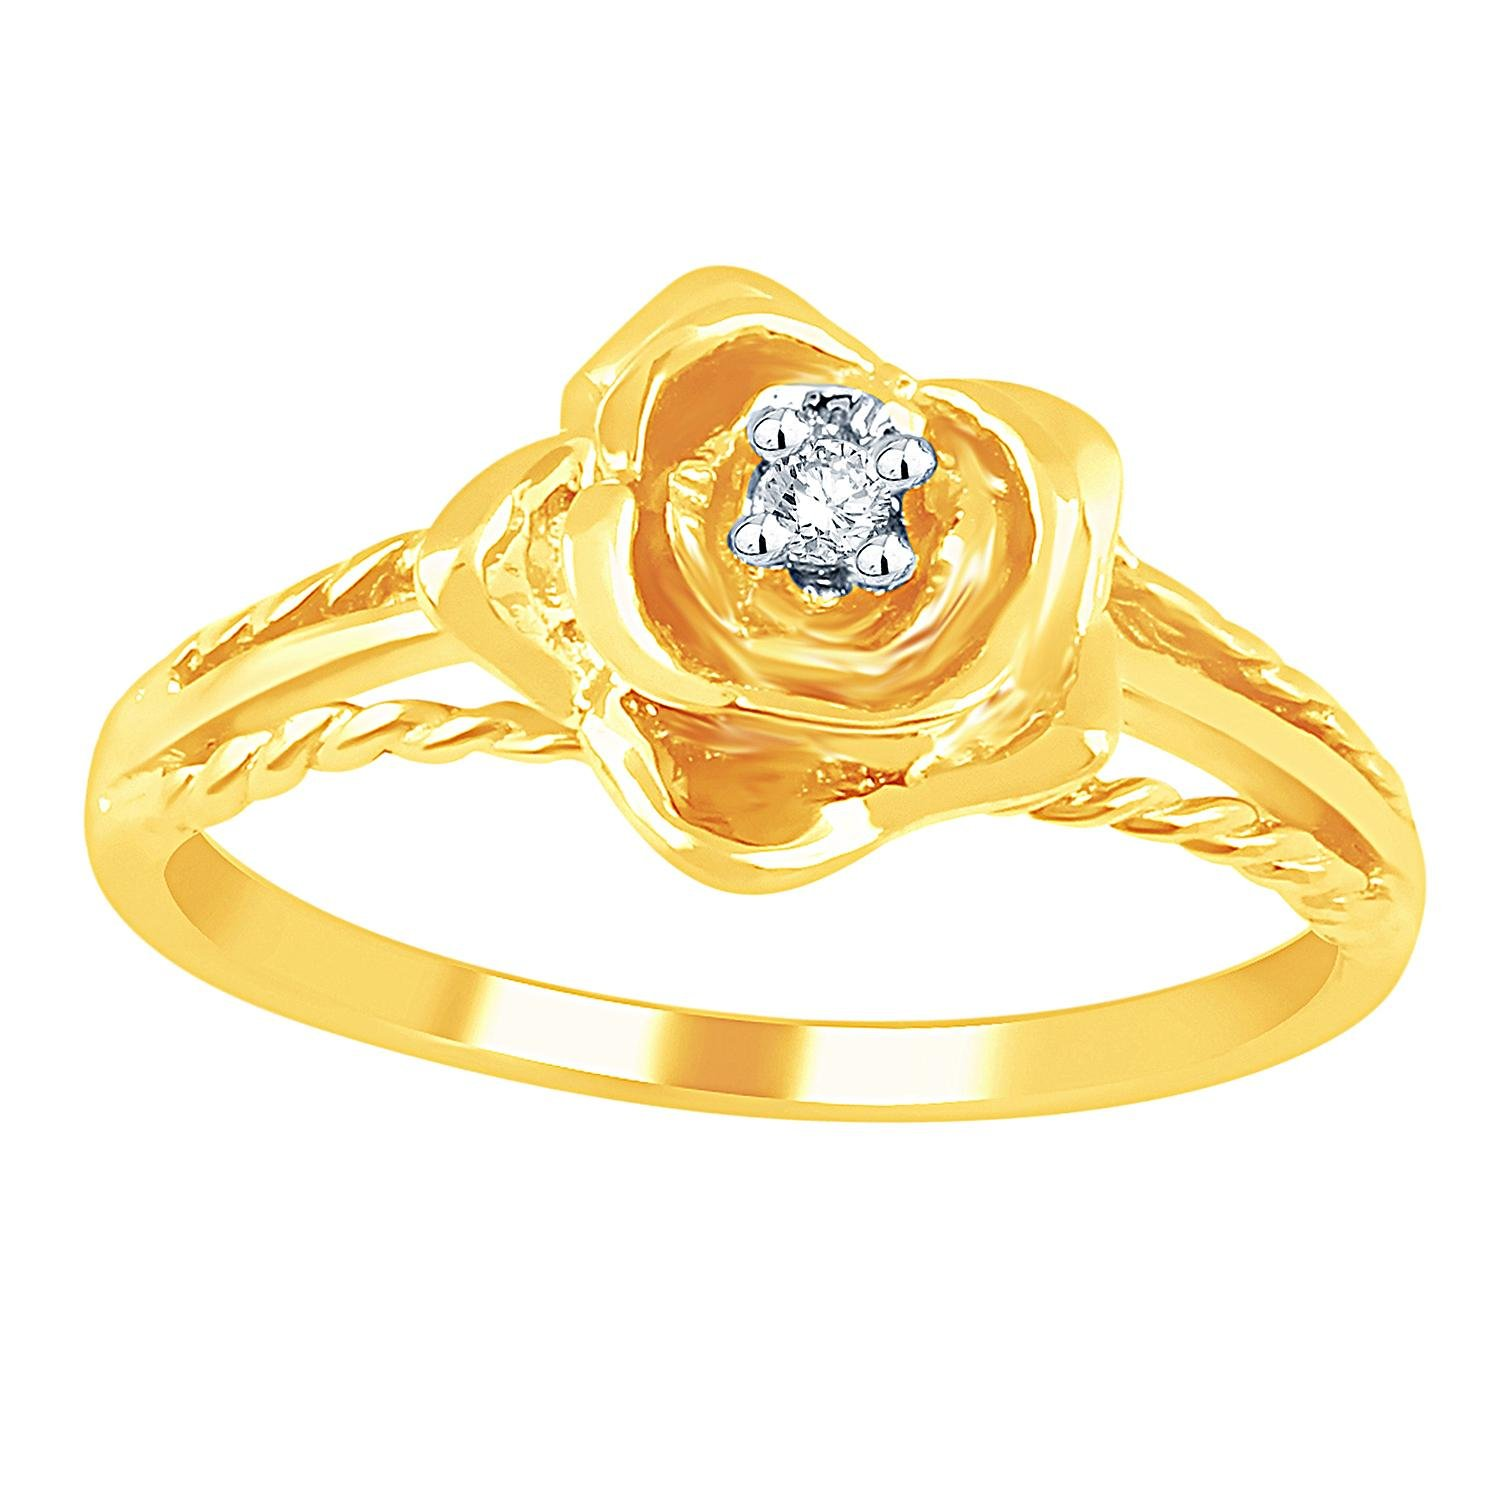 com dp engagement classic oval ring jewelry sterling rings silver amazon amber and